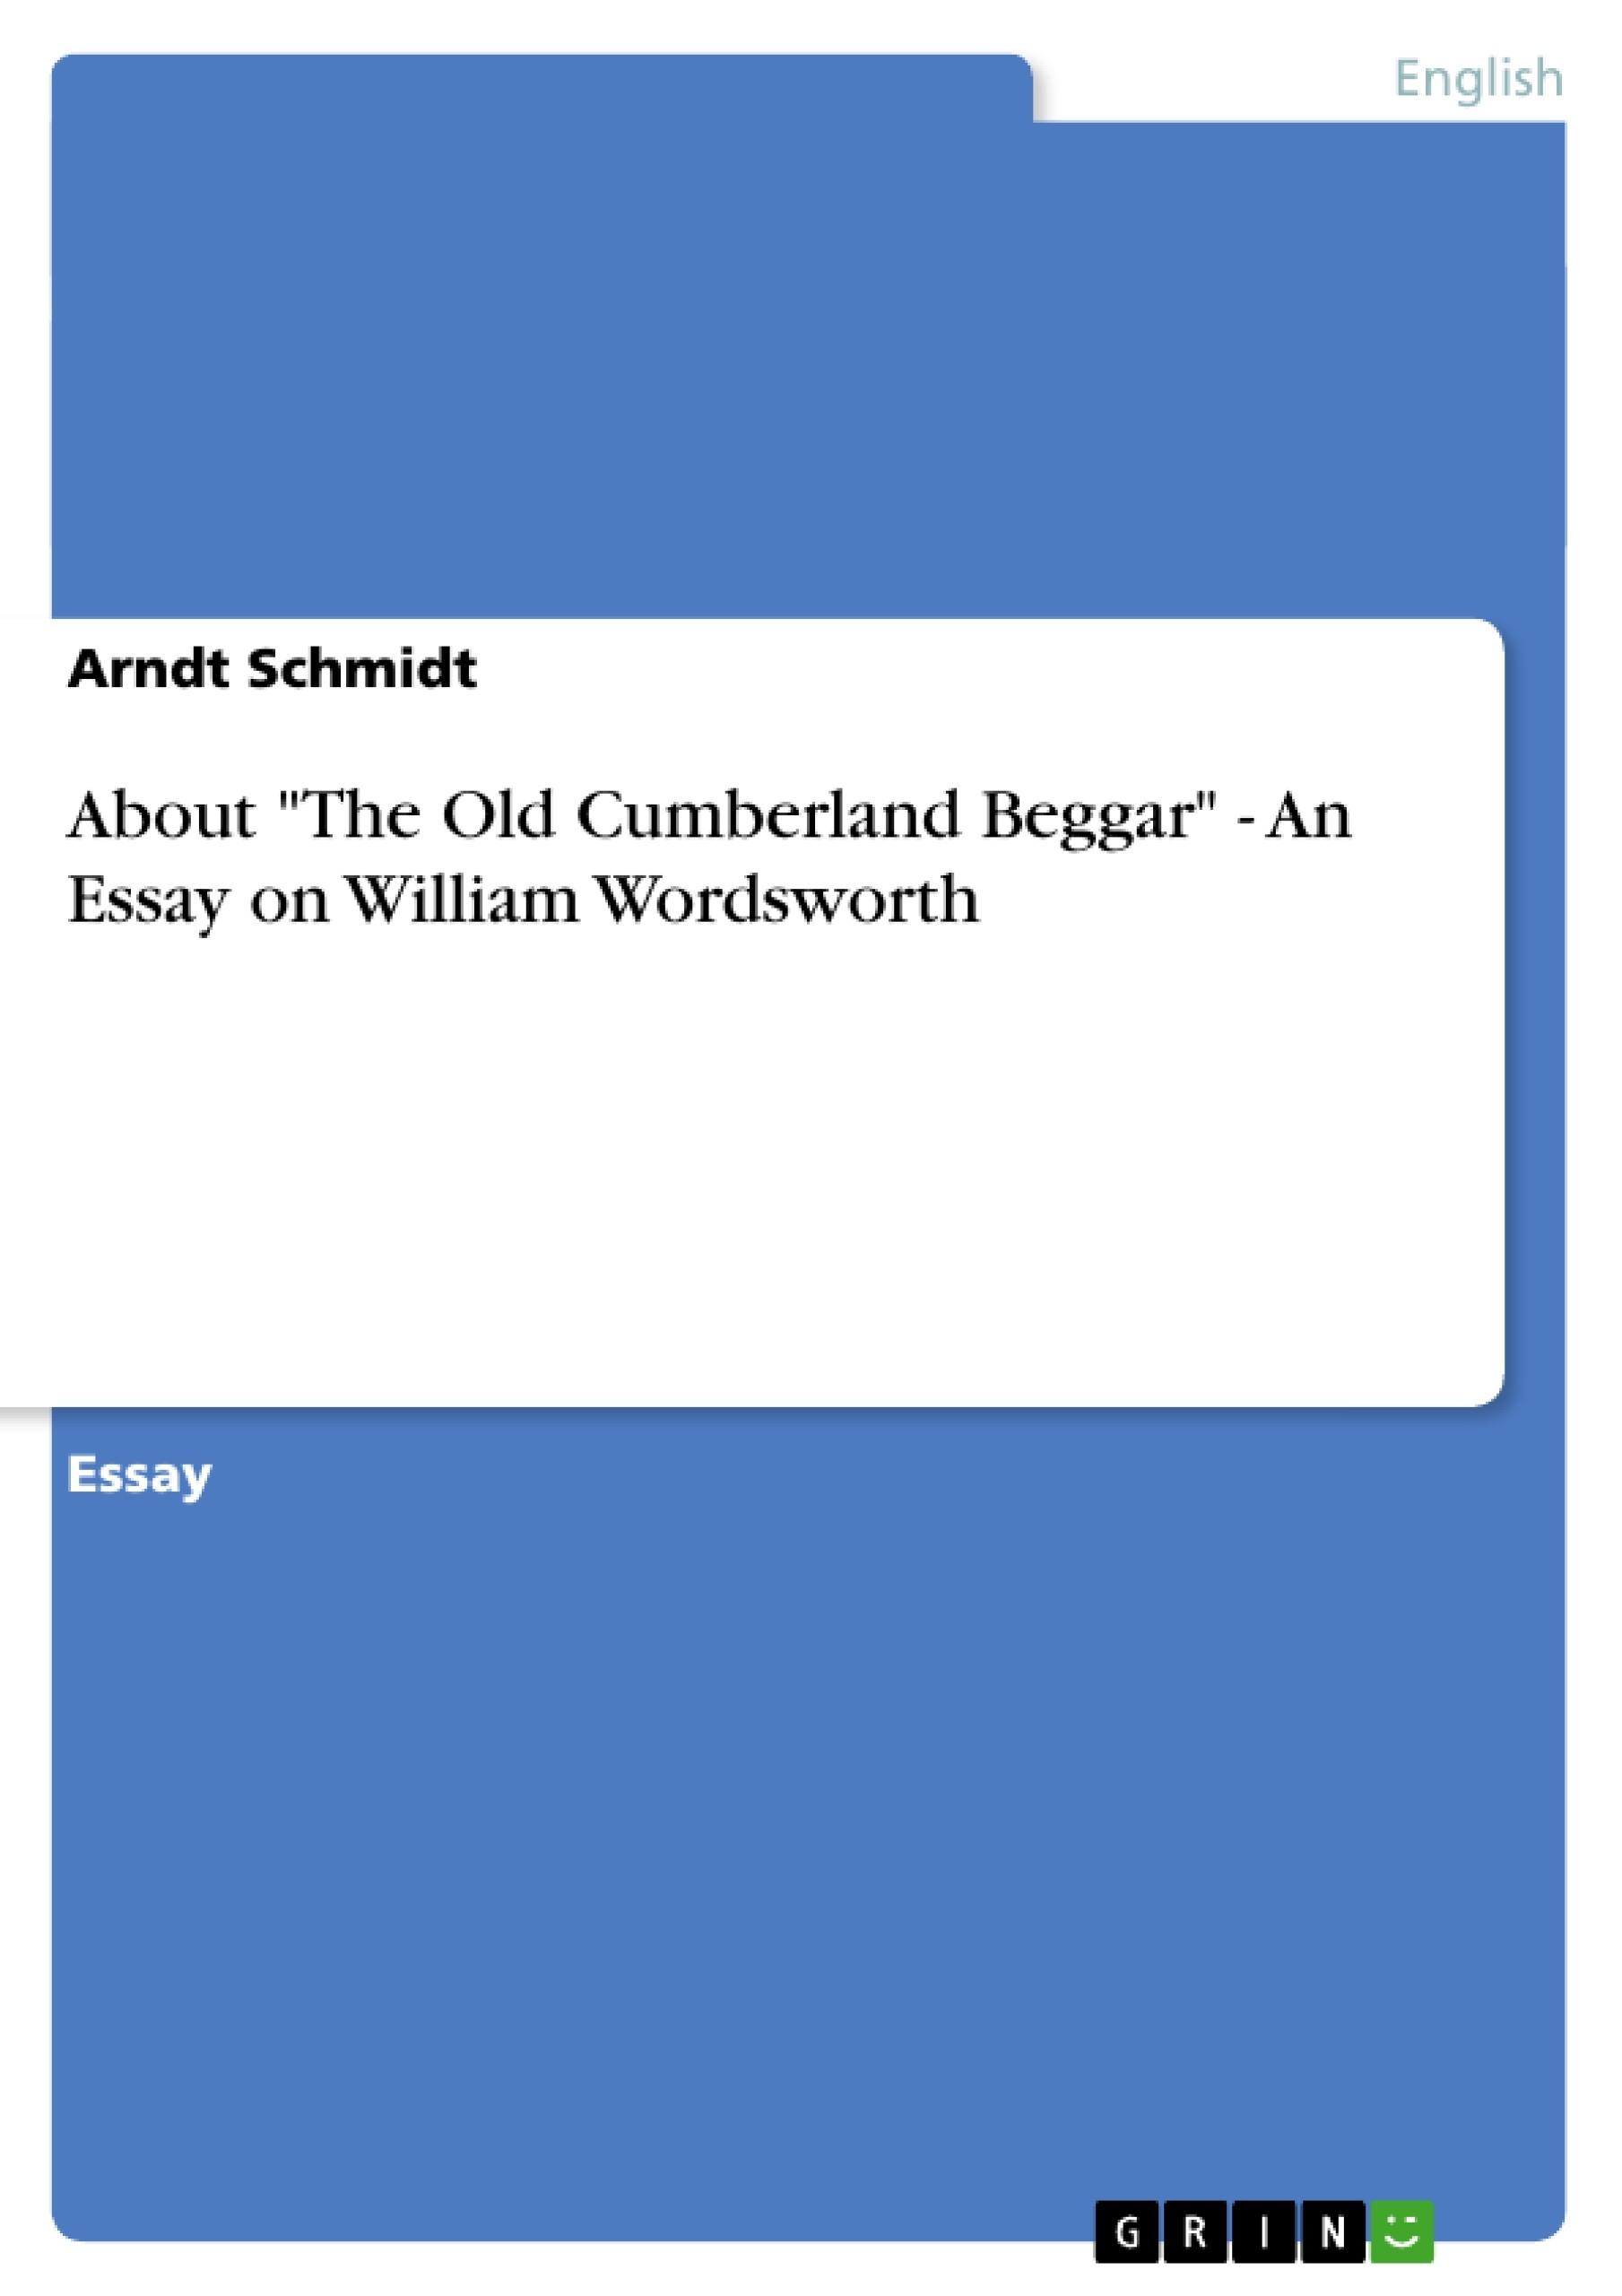 an essay on criticism analysis newcriticism phpapp thumbnail jpg  about the old cumberland beggar an essay on william wordsworth about the old cumberland beggar an criticism essay outline